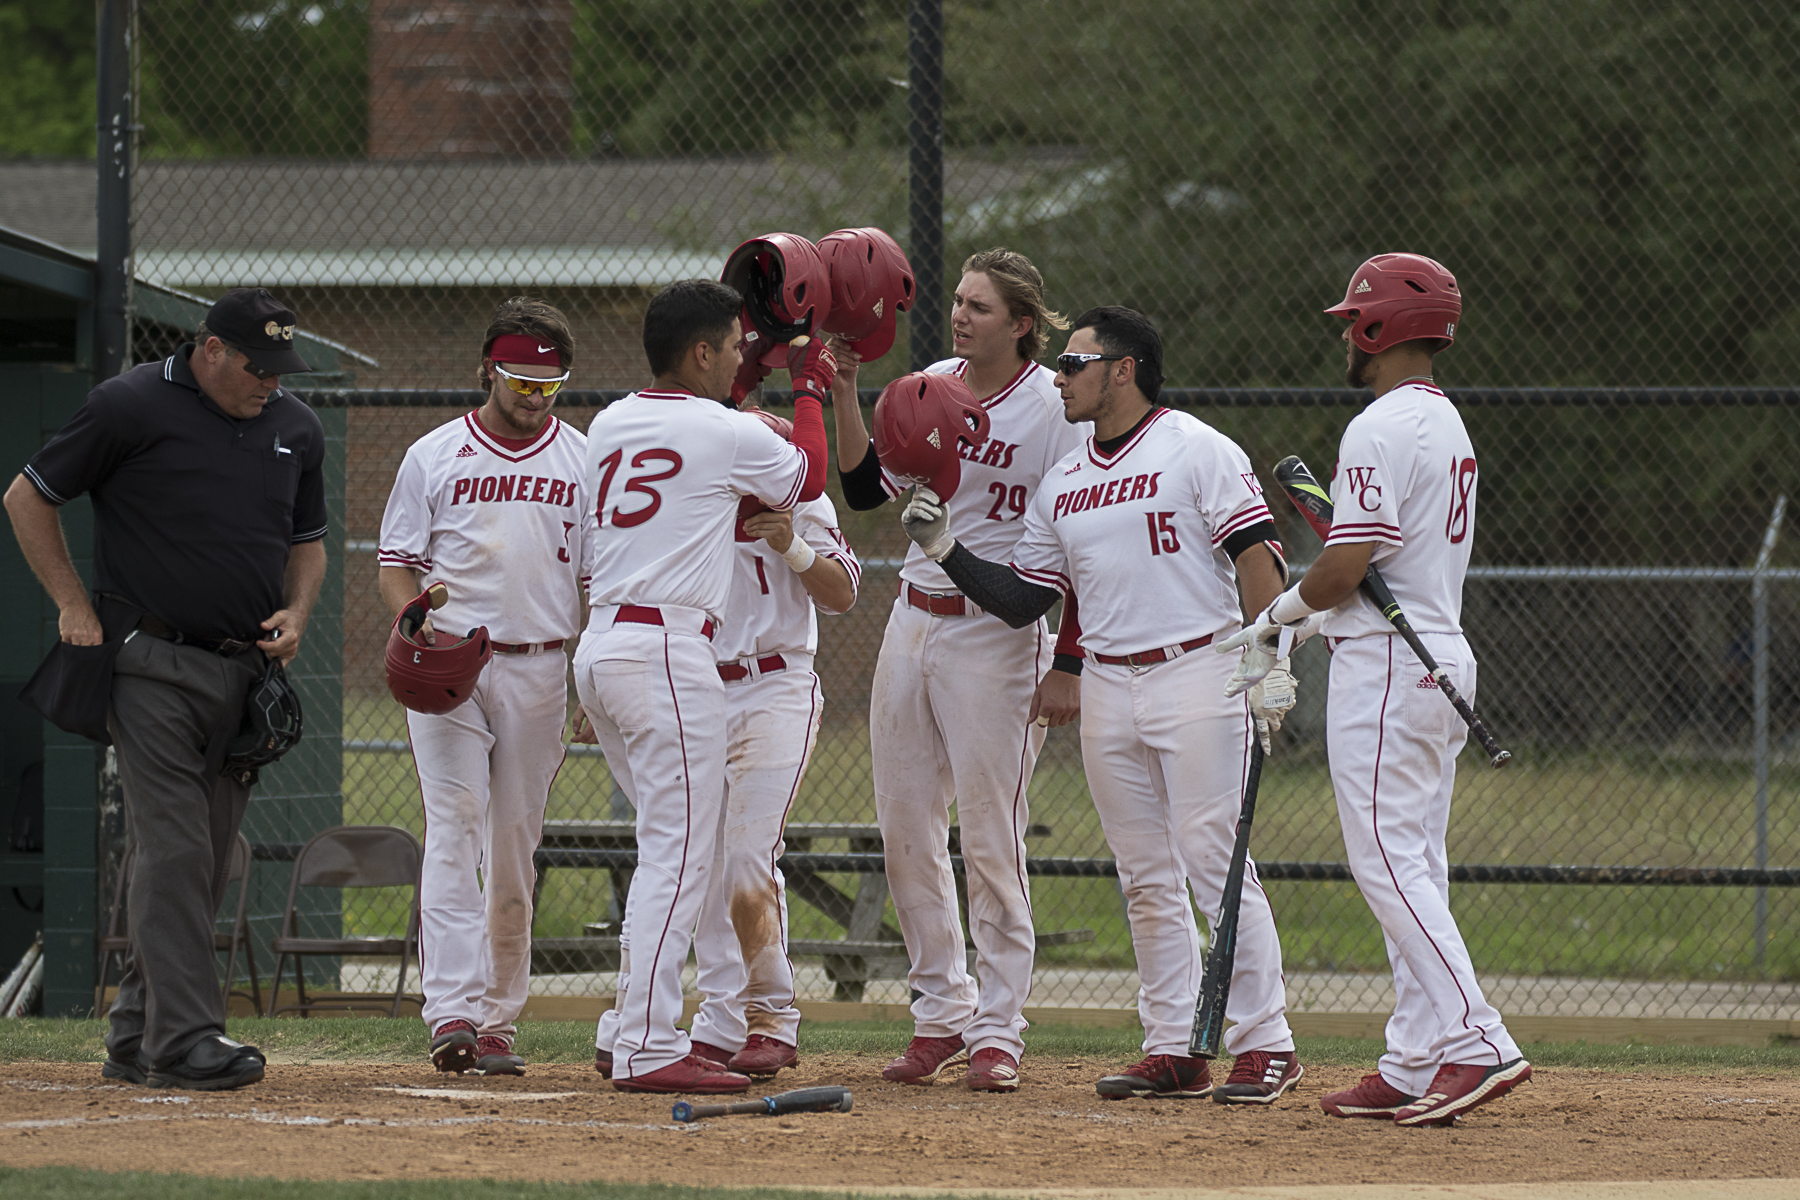 A SUCCESSFUL SEASON - WCJC Pioneers Baseball Team finishes third in conference